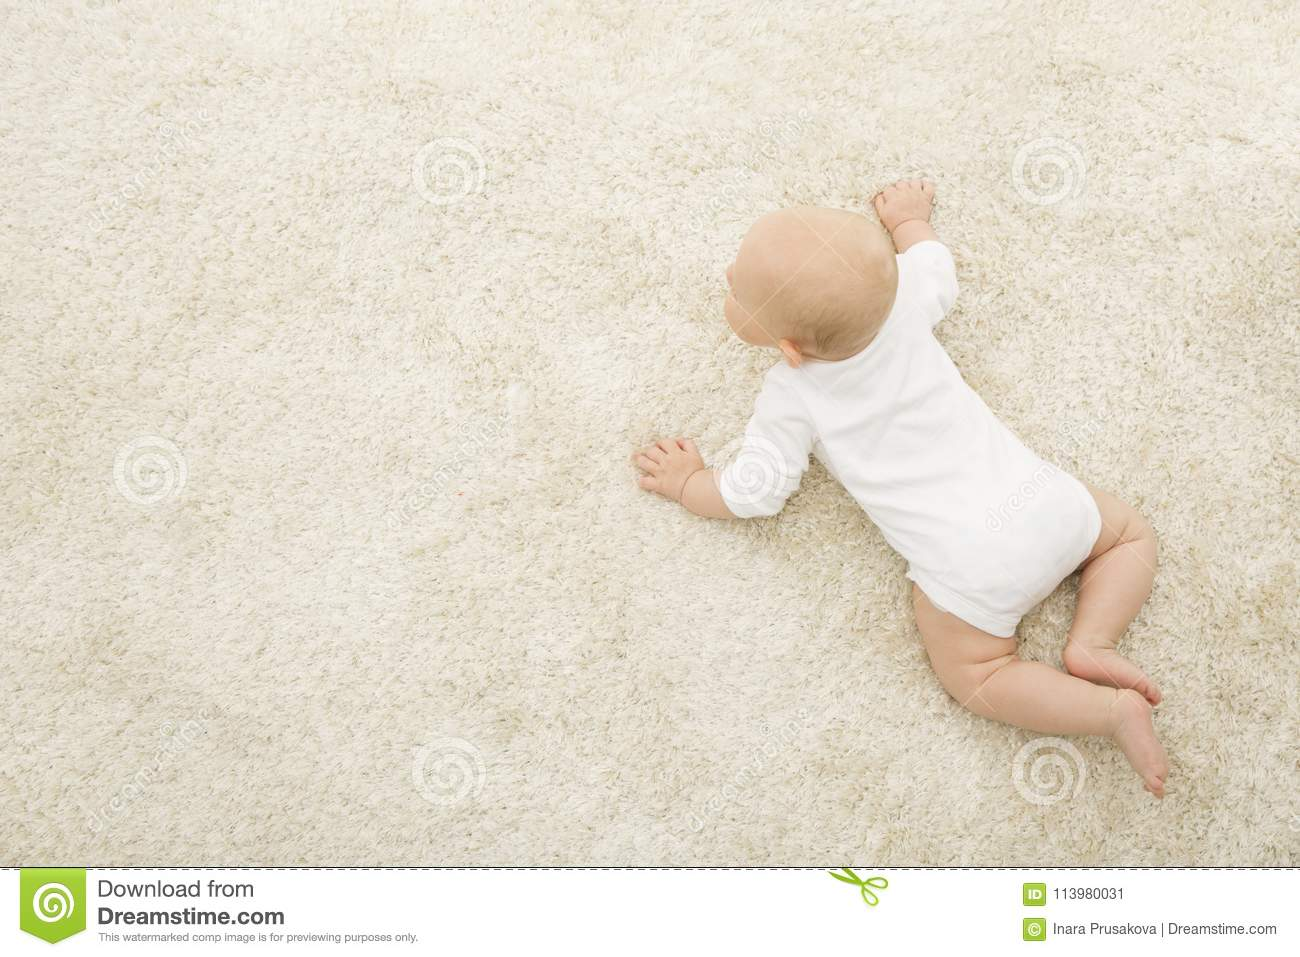 Crawling Baby on Carpet Background, Infant Kid Top View, Newborn